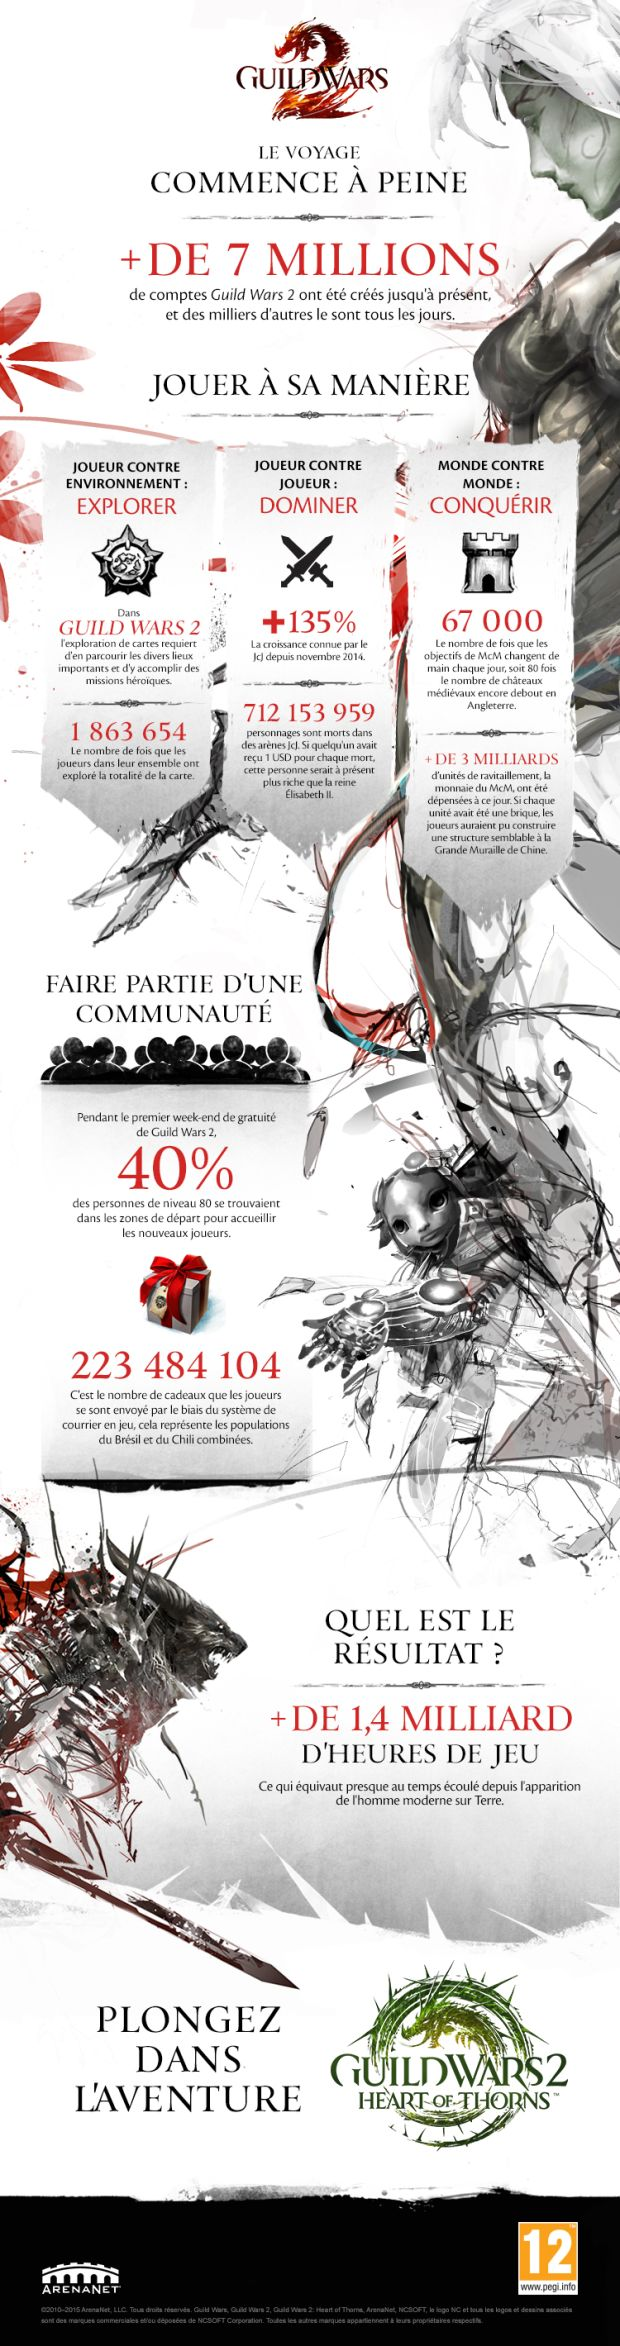 guild wars 2 infographie heart of thorns